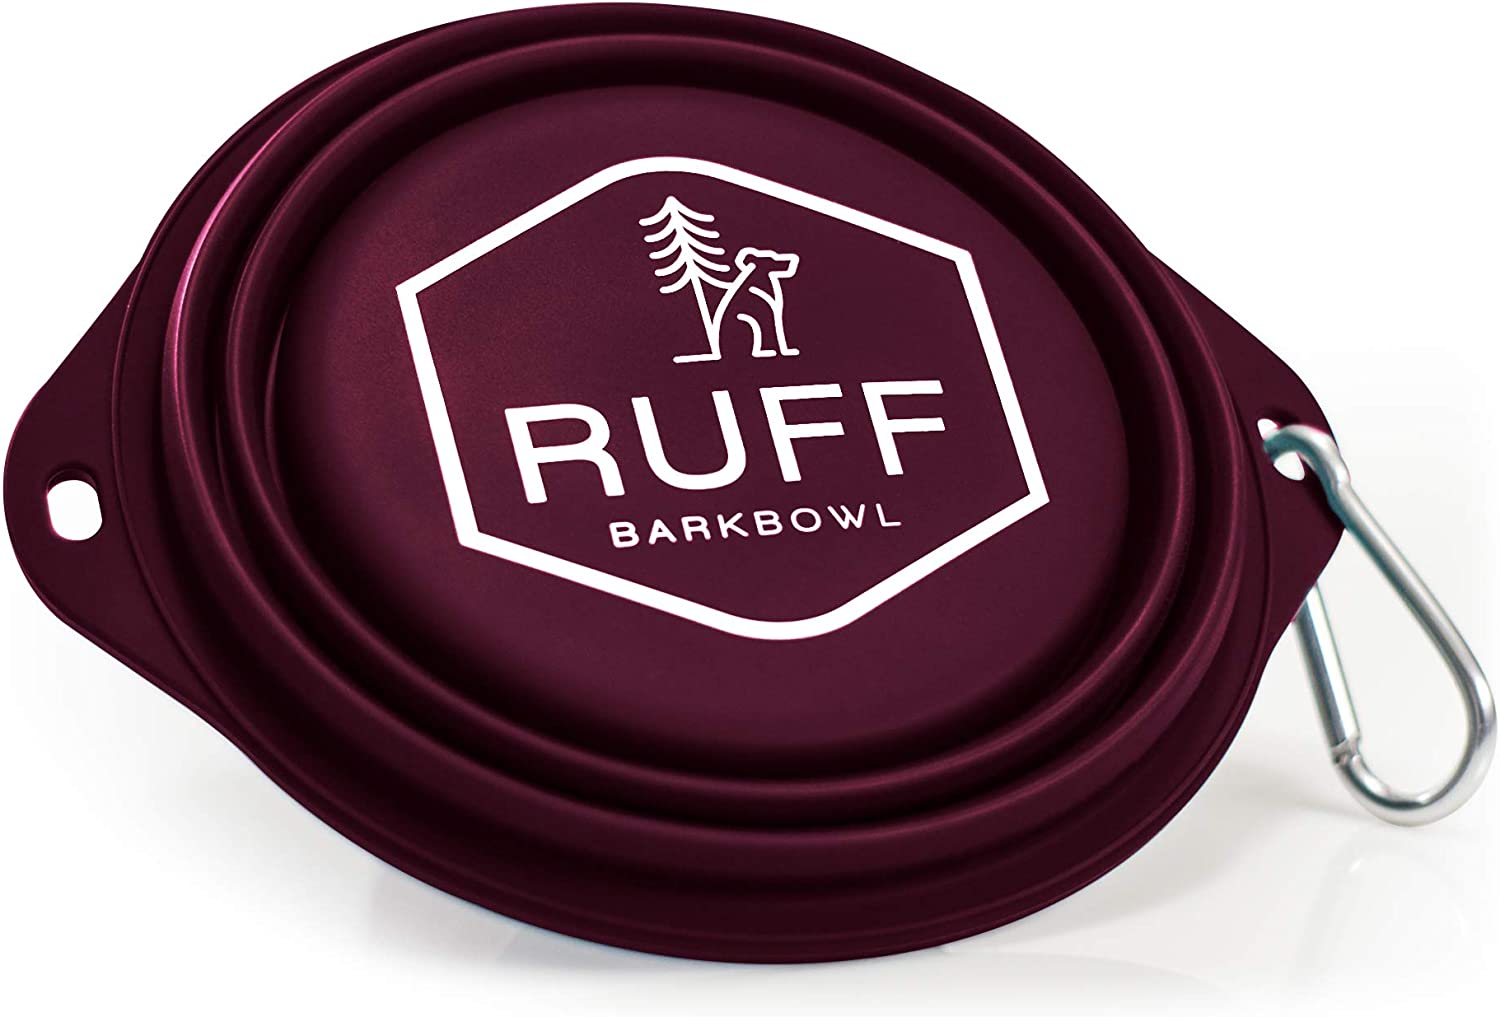 Ruff Products BarkBowl (Maroon, 800ml) - Collapsible Dog Bowl Premium Quality, Platinum-Cured Food Grade Silicone, No Plastic Rim, Food Safe, Large Travel Bowl